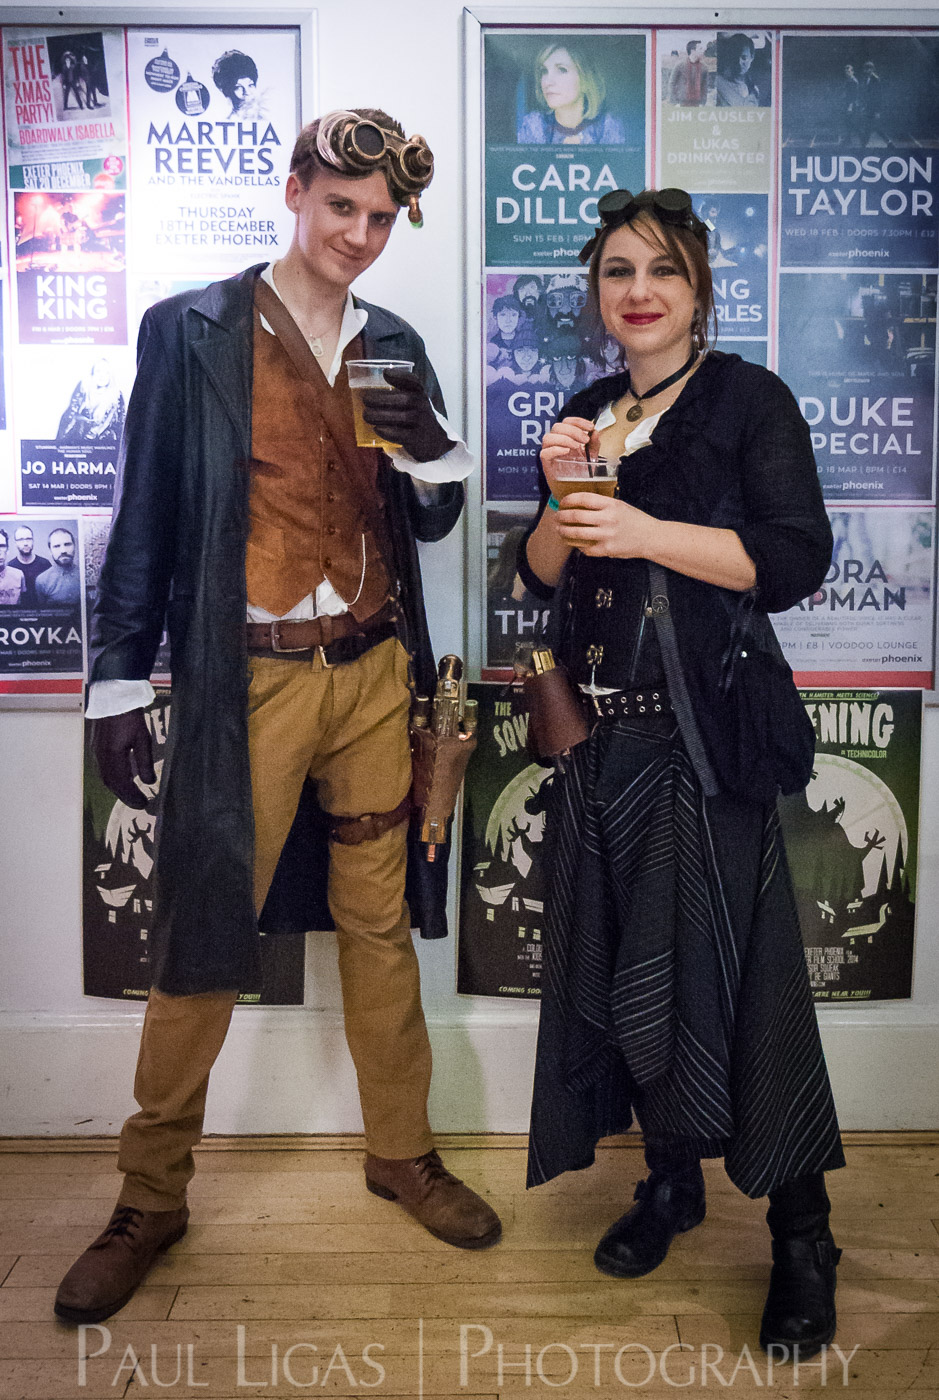 Steampunk Yule Ball 2014, event photographer photography Herefordshire 6349